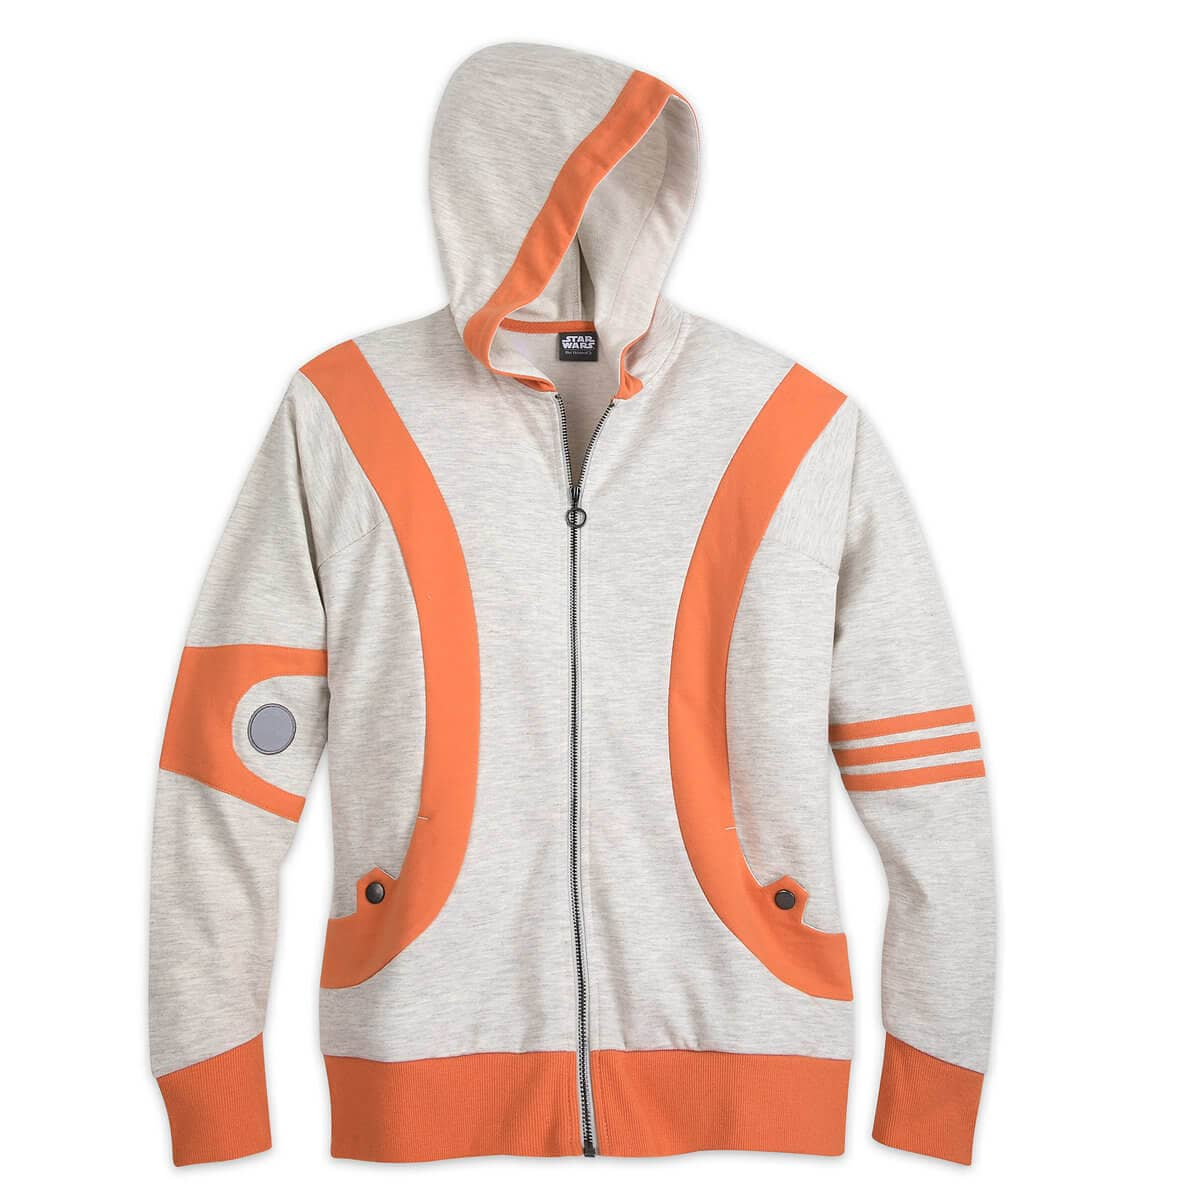 BB-8 Hooded Sweatshirt for Women